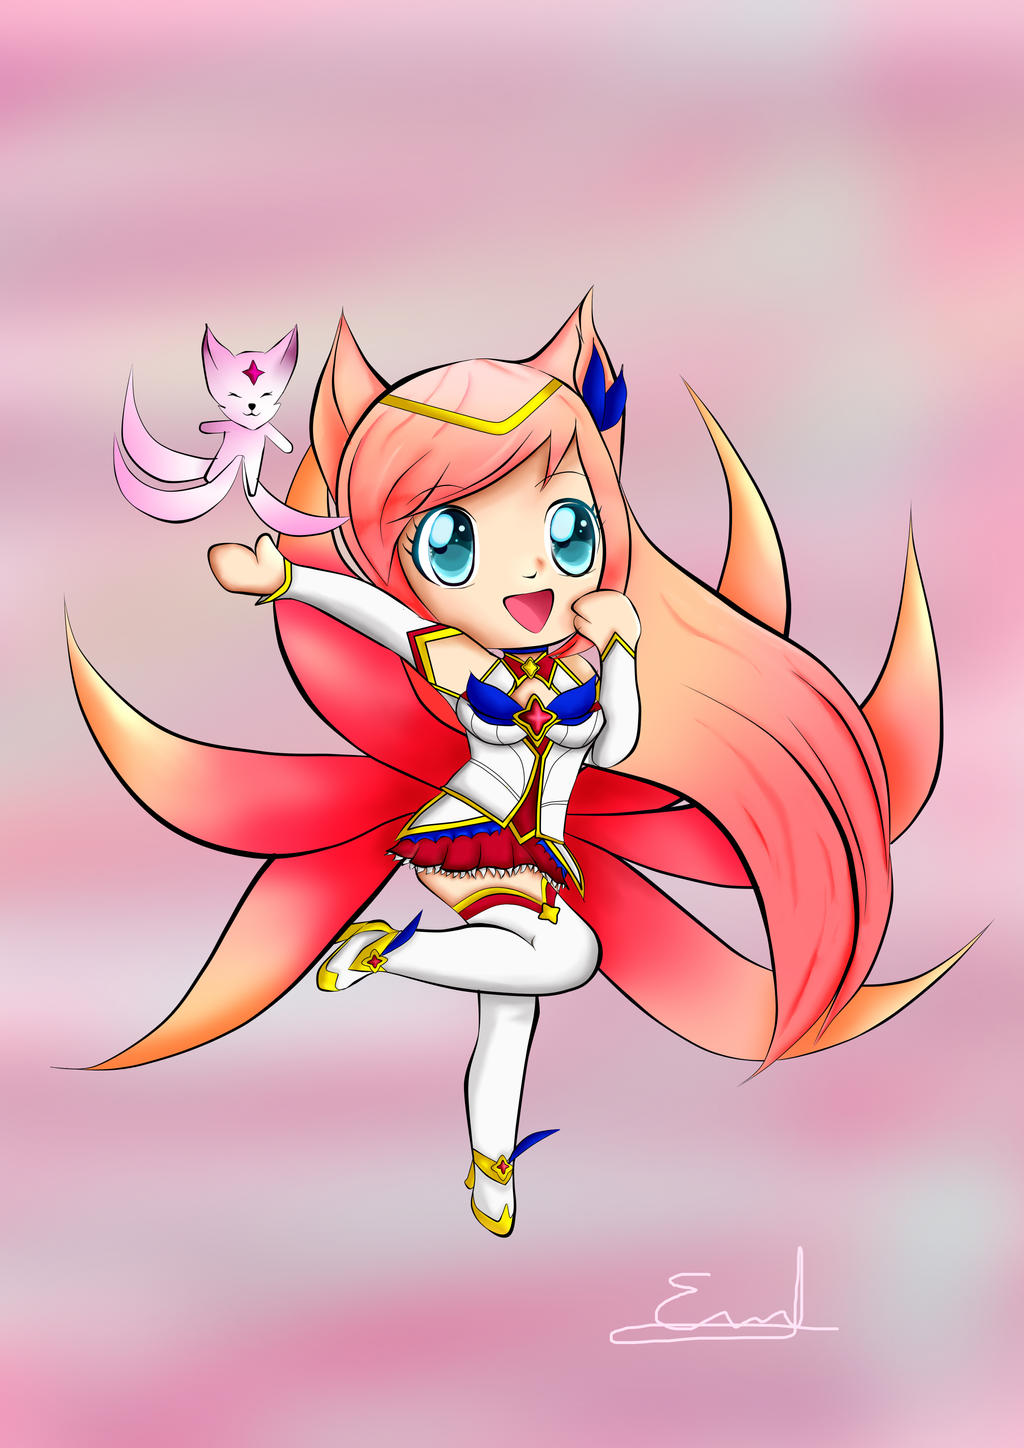 Star Guardian Chibi Ahri by Dreamanie